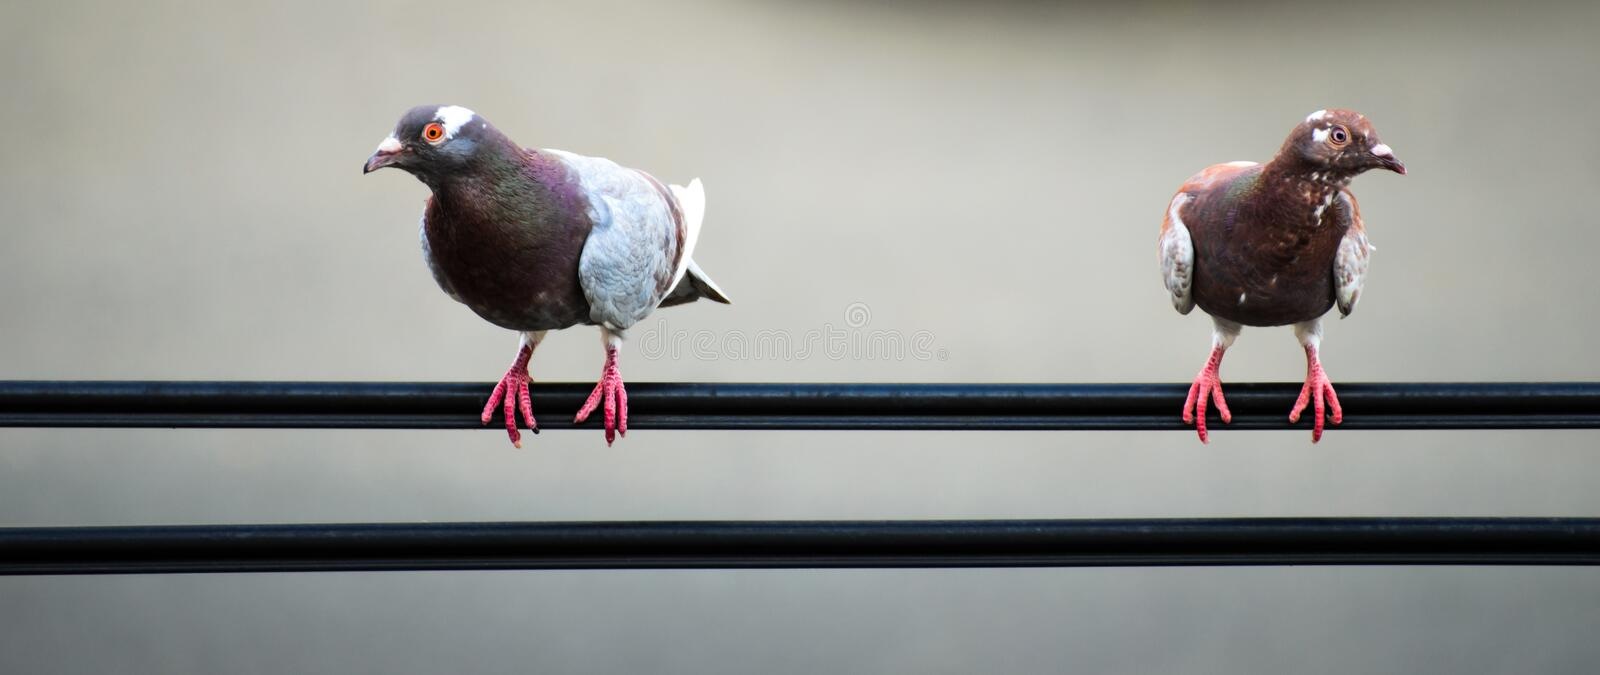 Download Pair of pigeons stock photo. Image of clear, dawn, beautiful - 26250922